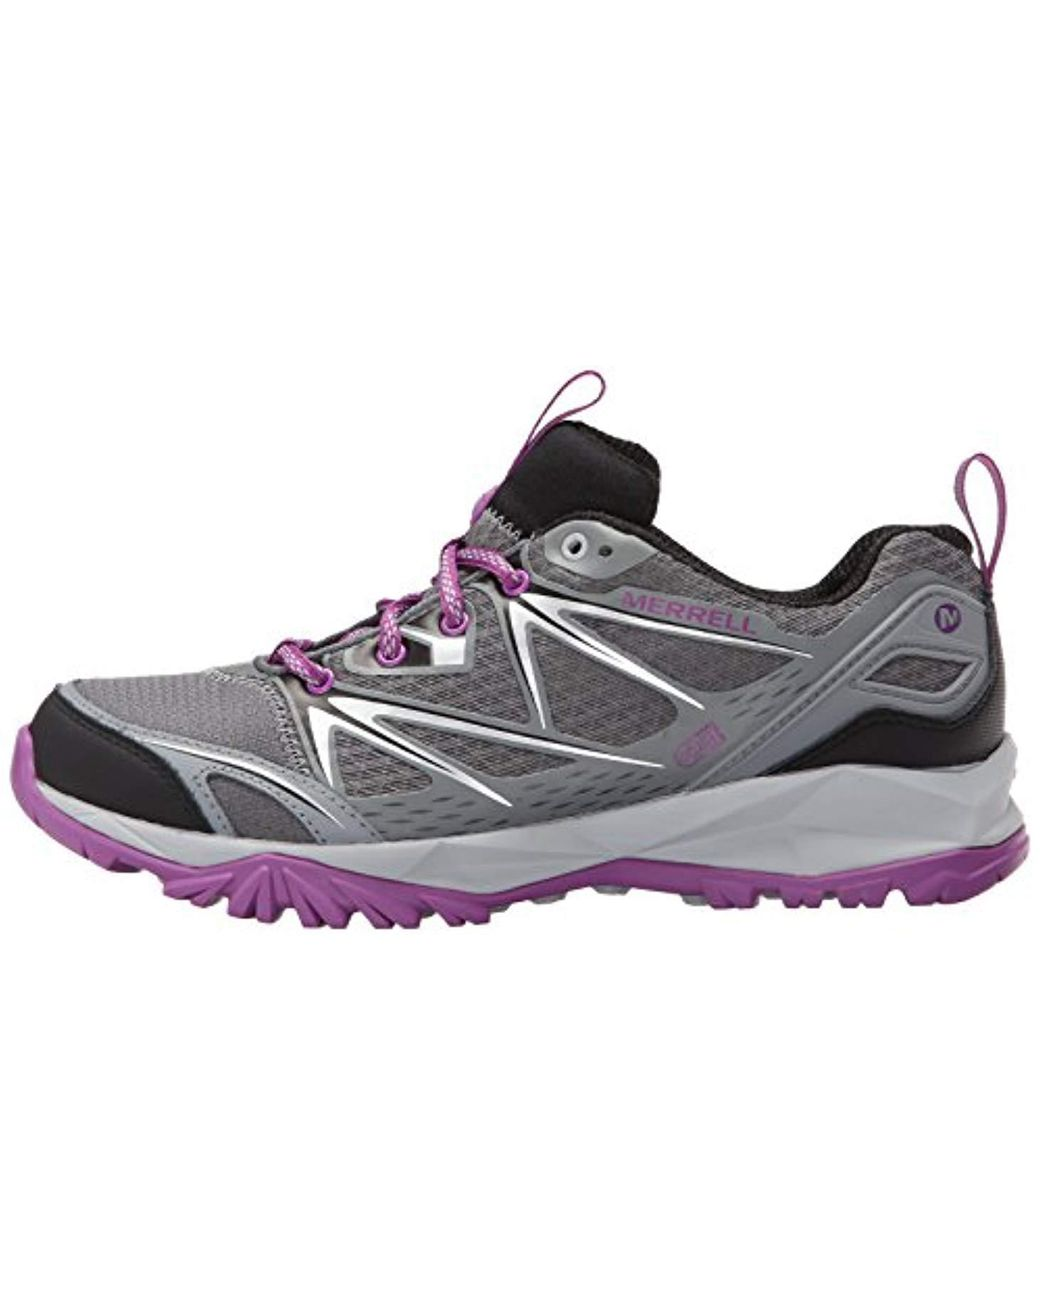 MERRELL CAPRA BOLT LADIES GORE TEX LACE UP WATERPROOF WALKING TRAINERS SHOES